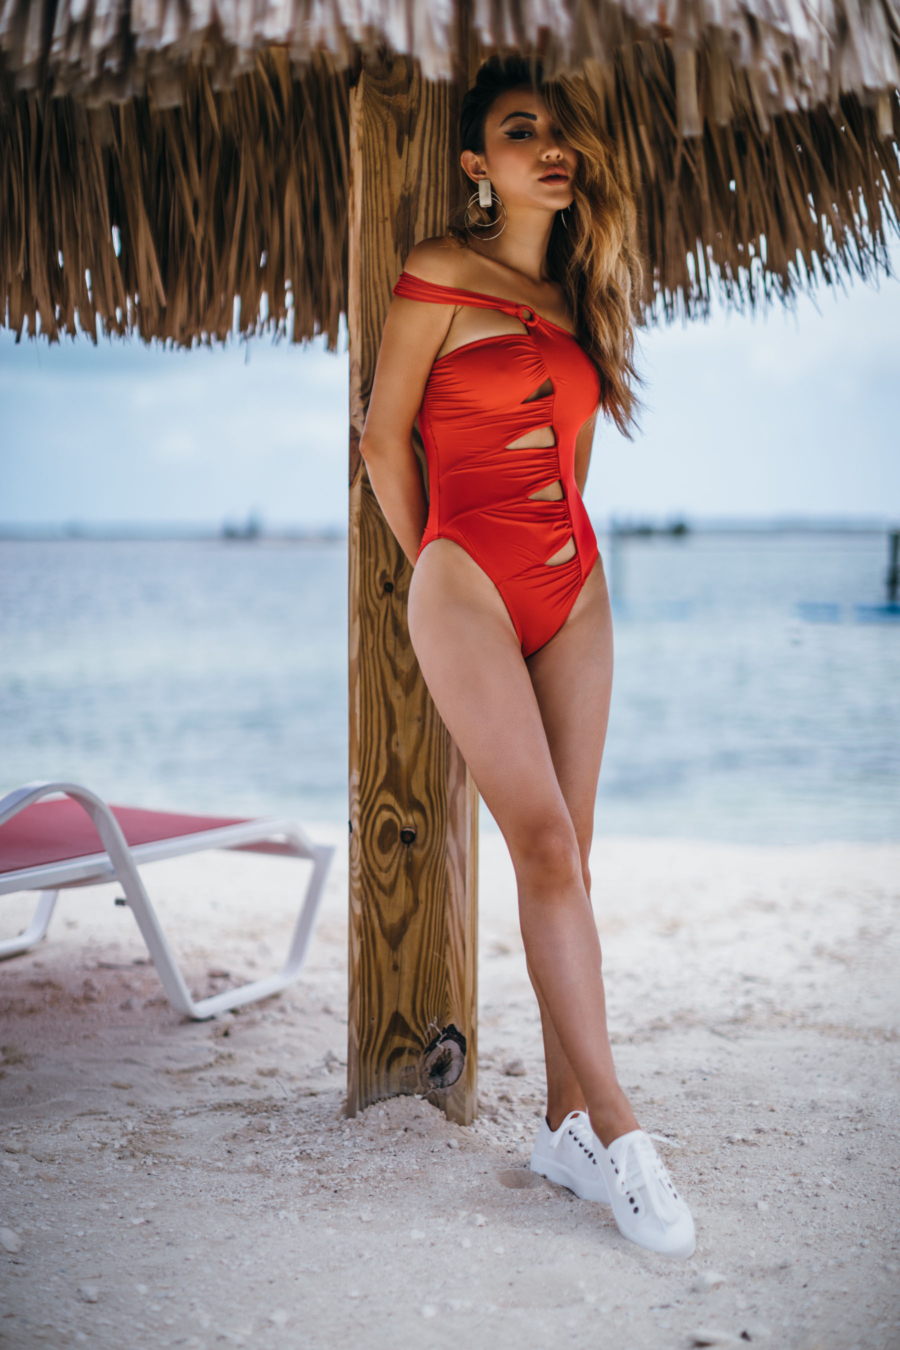 Red One Piece Swimsuit Asos - How To Find The Perfect One Piece Swimsuit // NotJessFashion.com